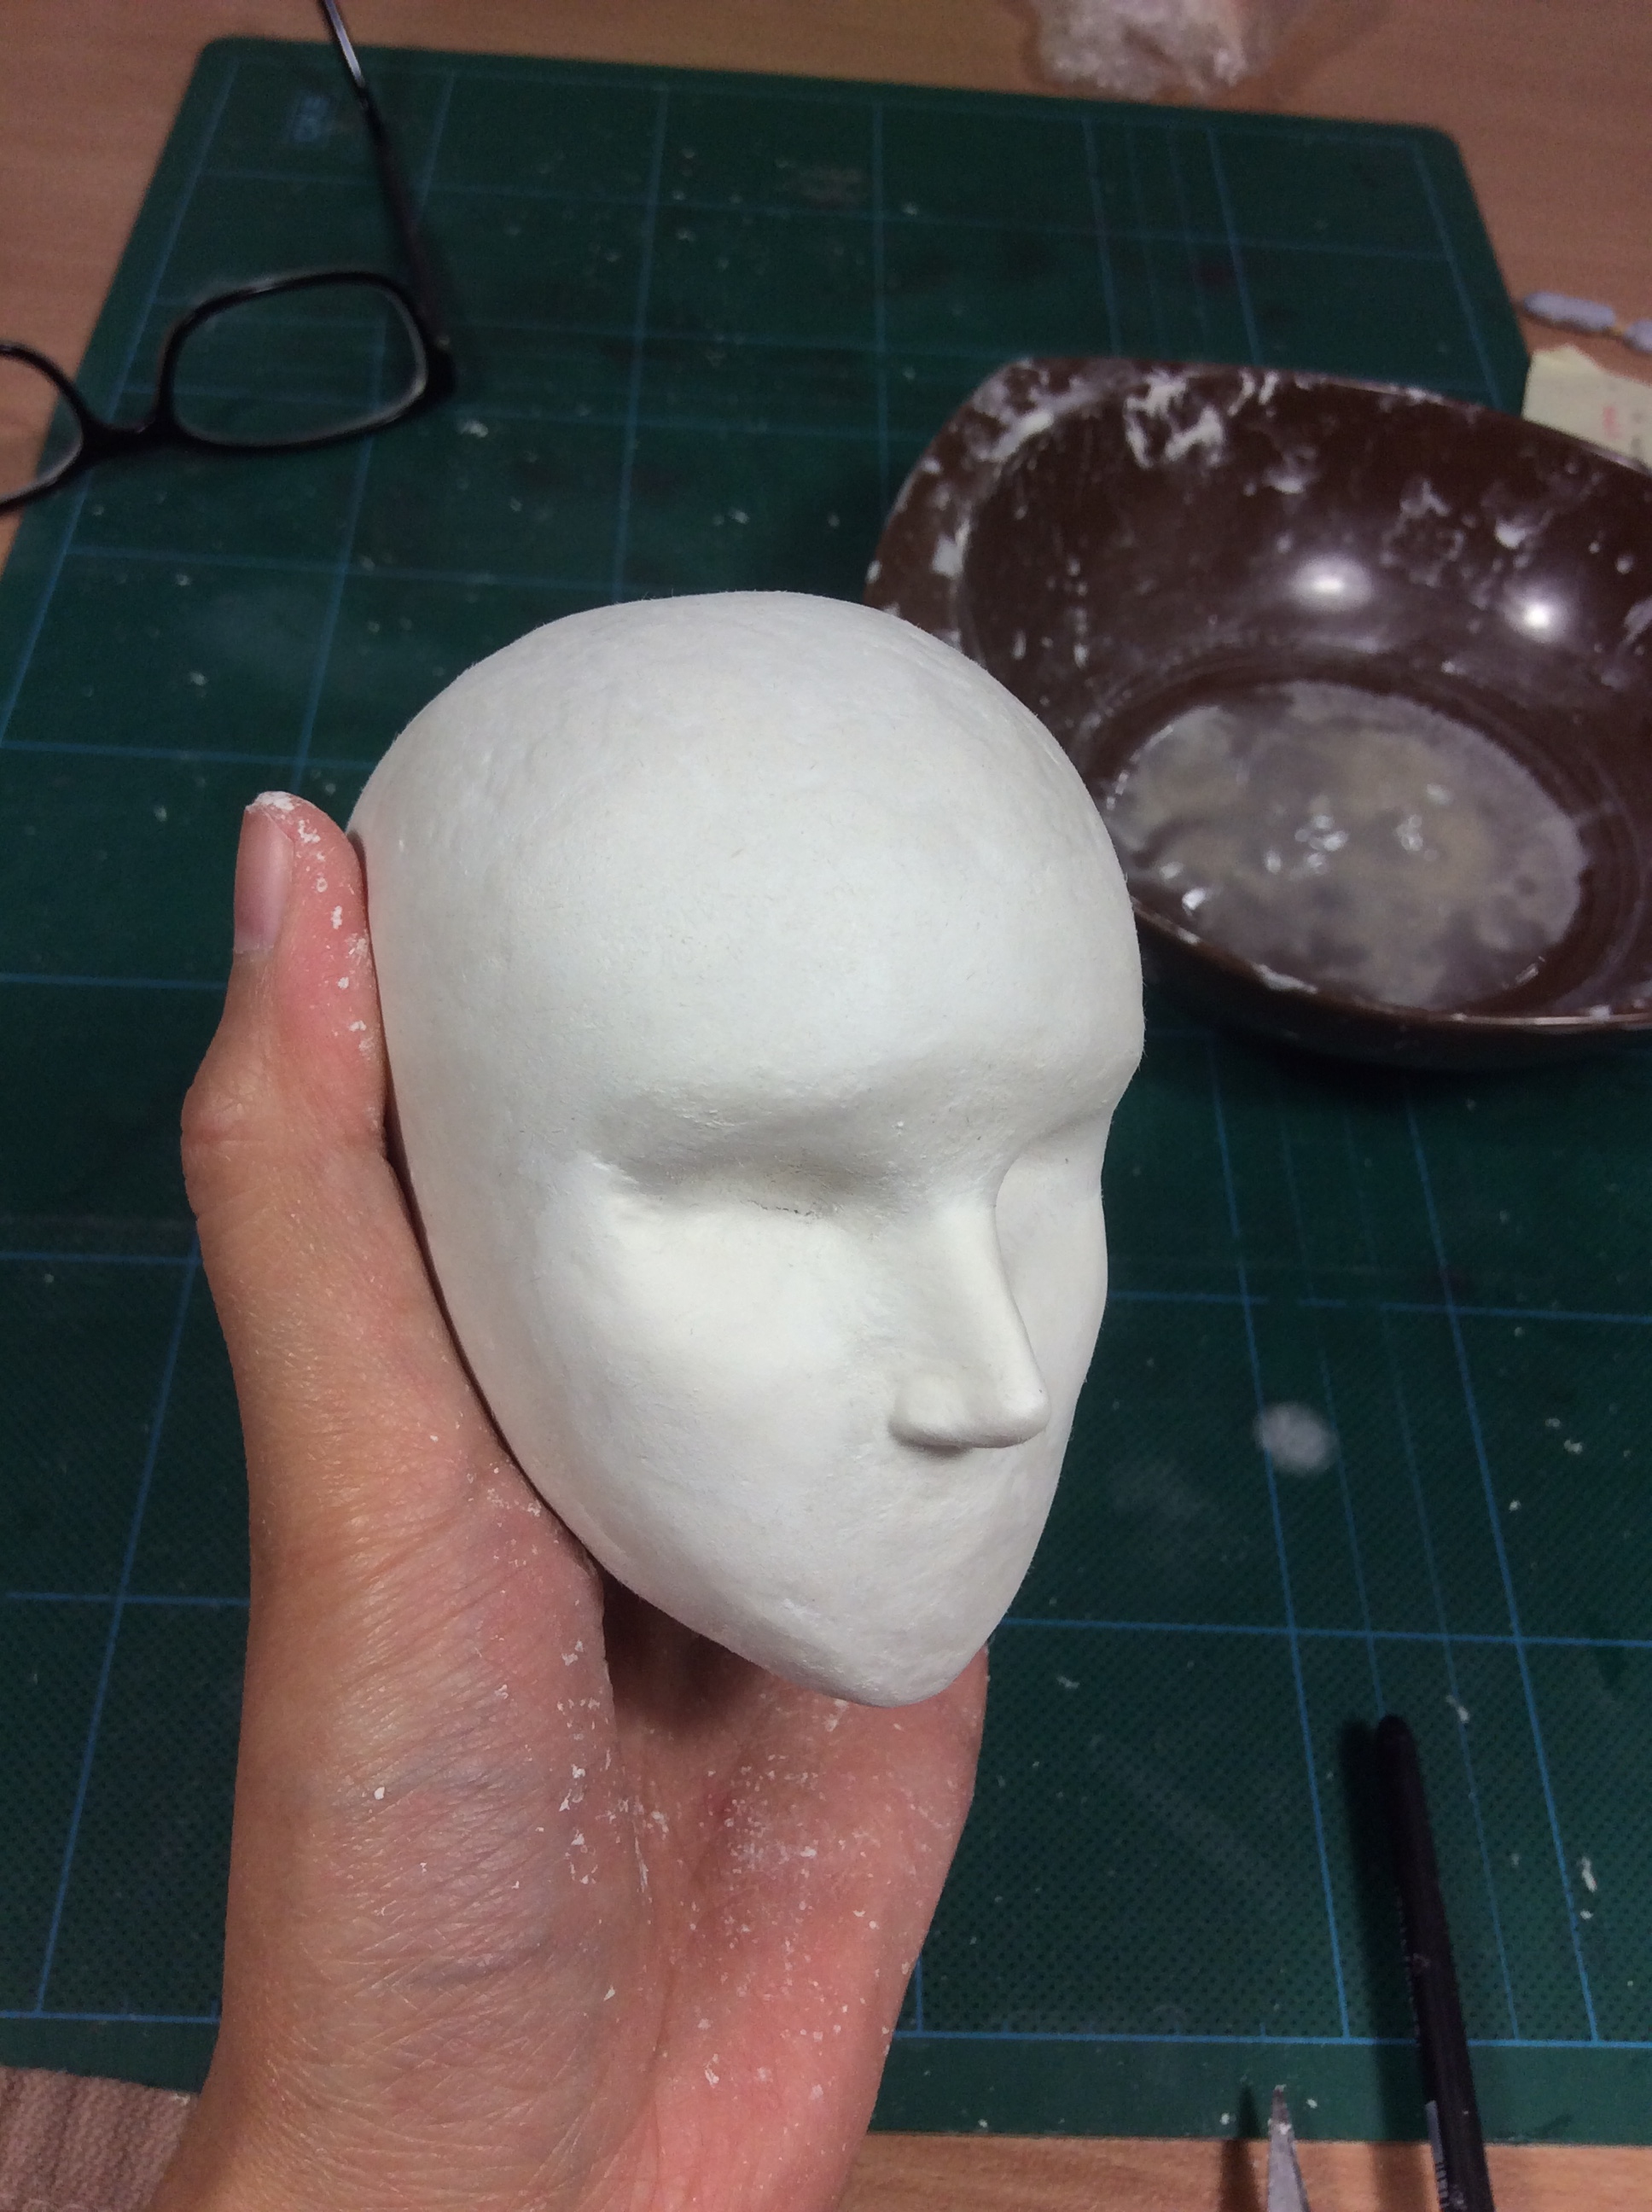 jemse---my-first-doll-head-making-progress-diary-part-1_31570929714_o